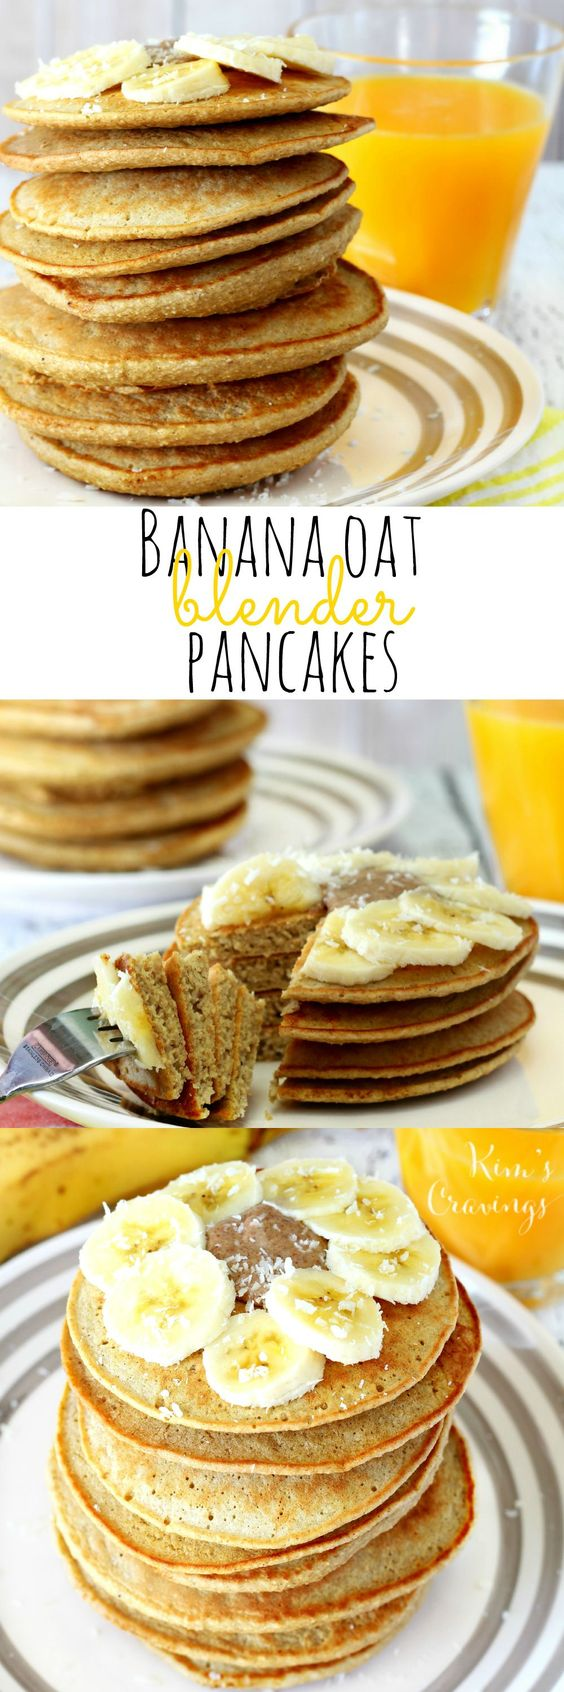 So super easy and yummy- these Banana Oat Blender Pancakes come together in about 5 minutes and are full of nutritious goodness! You'll love them because they're gluten-free, dairy-free and free of refined sugars. Your kiddos will gobble them up because they're as tasty as can be! (gluten-free, low-calorie, dairy-free):